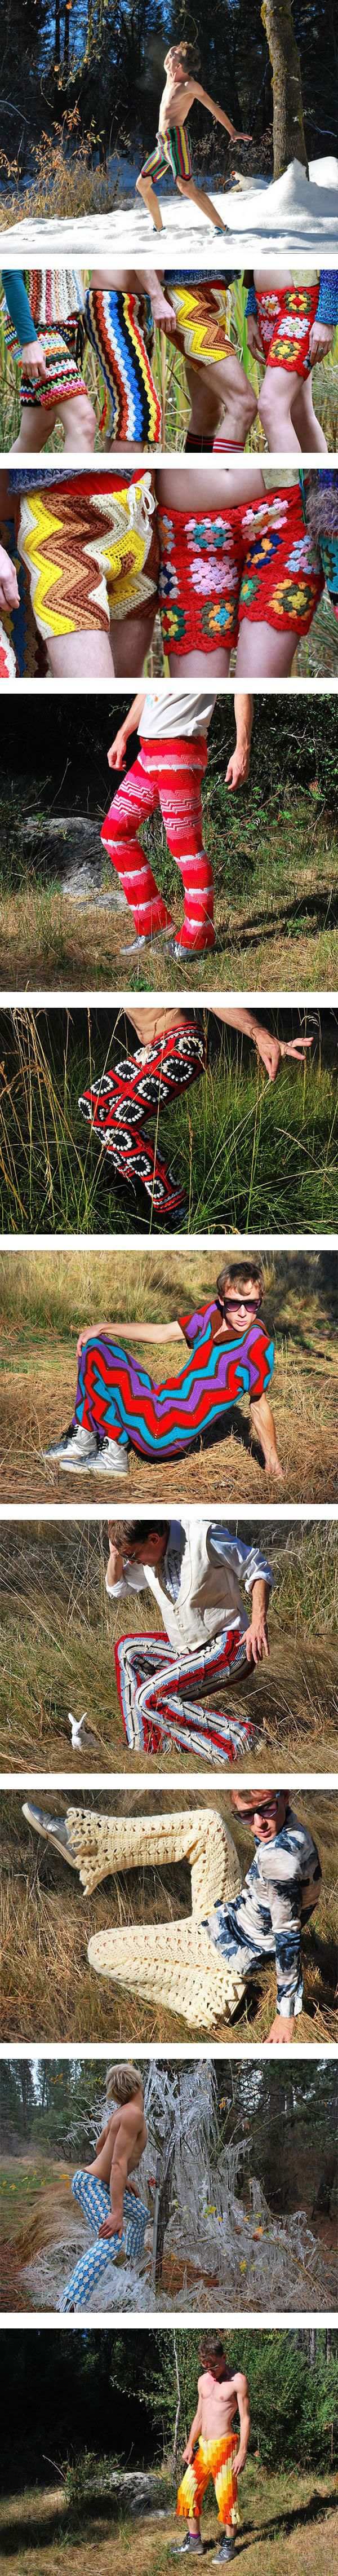 new fashion for men crochet shorts made from recycled vintage blankets - Feb 02 2015 11:16 PM